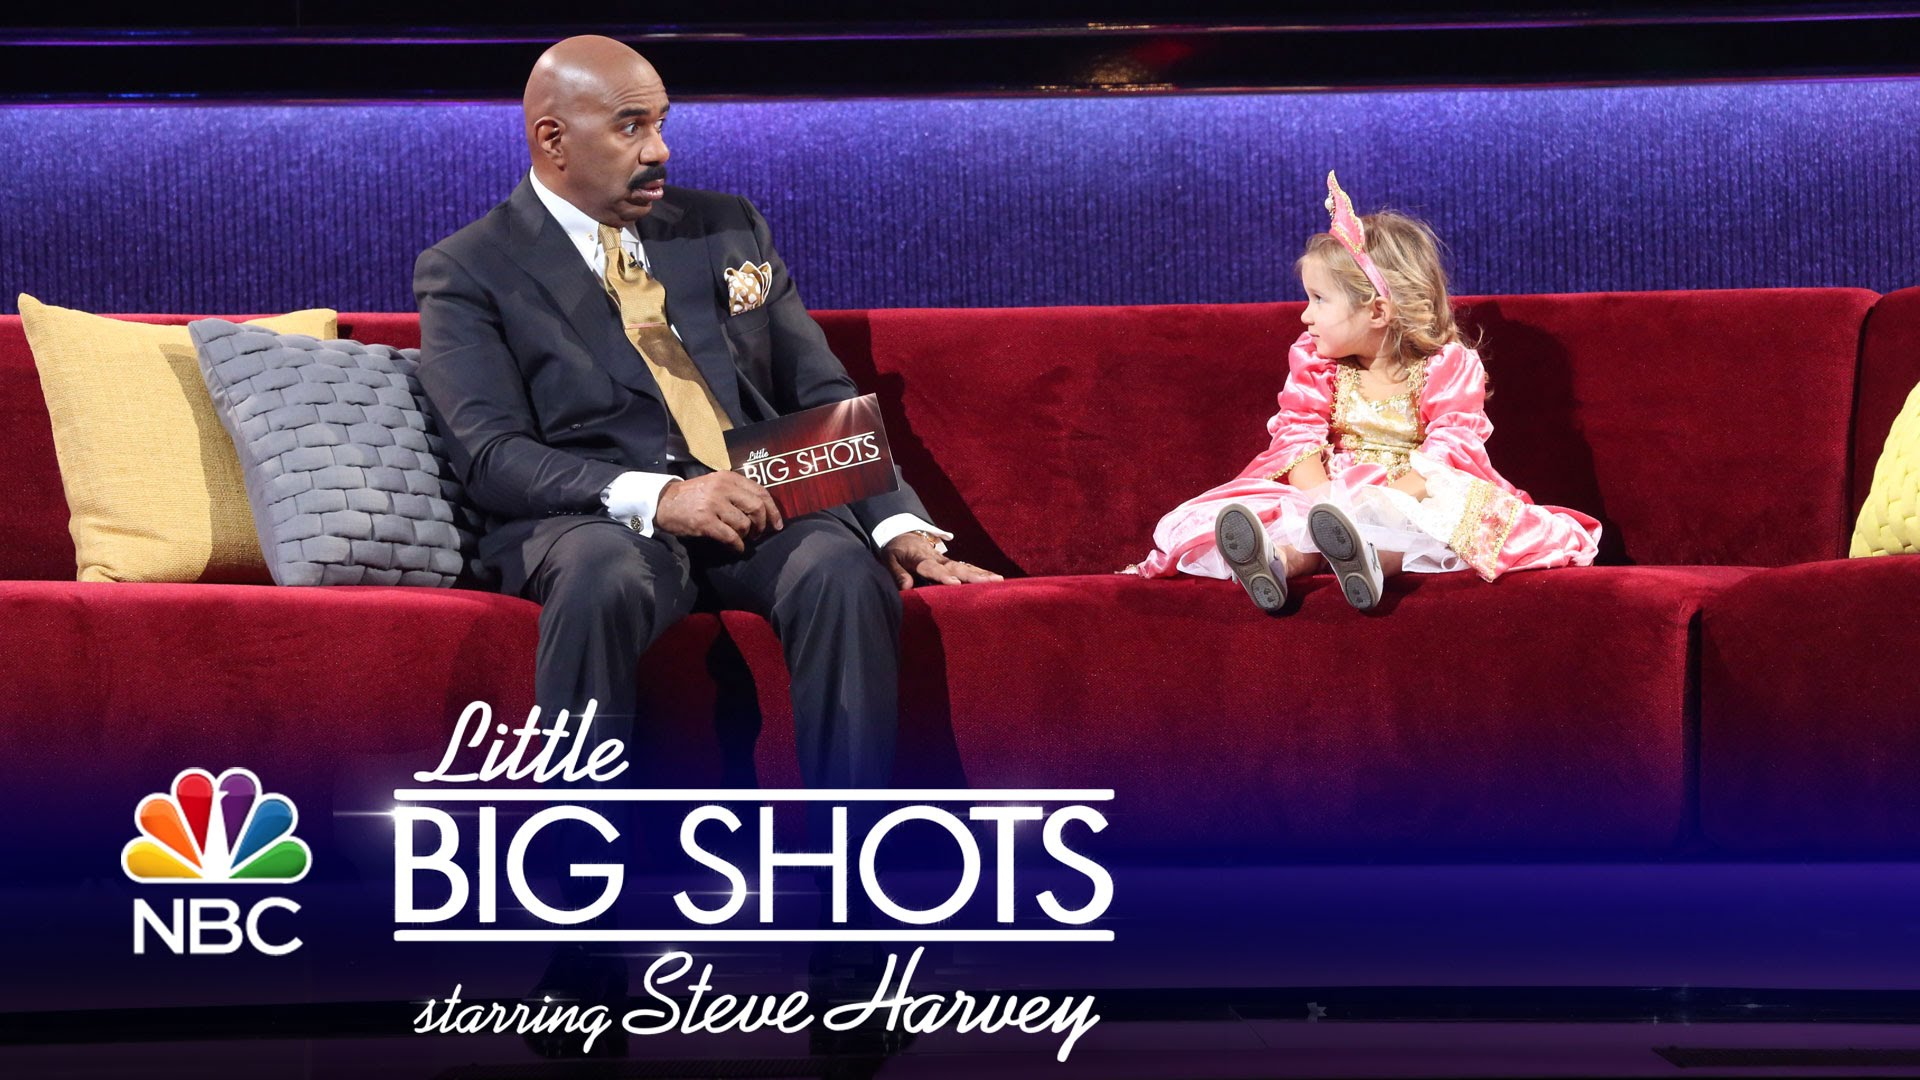 Little Big Shots - You'll Jump for Heavenly Joy